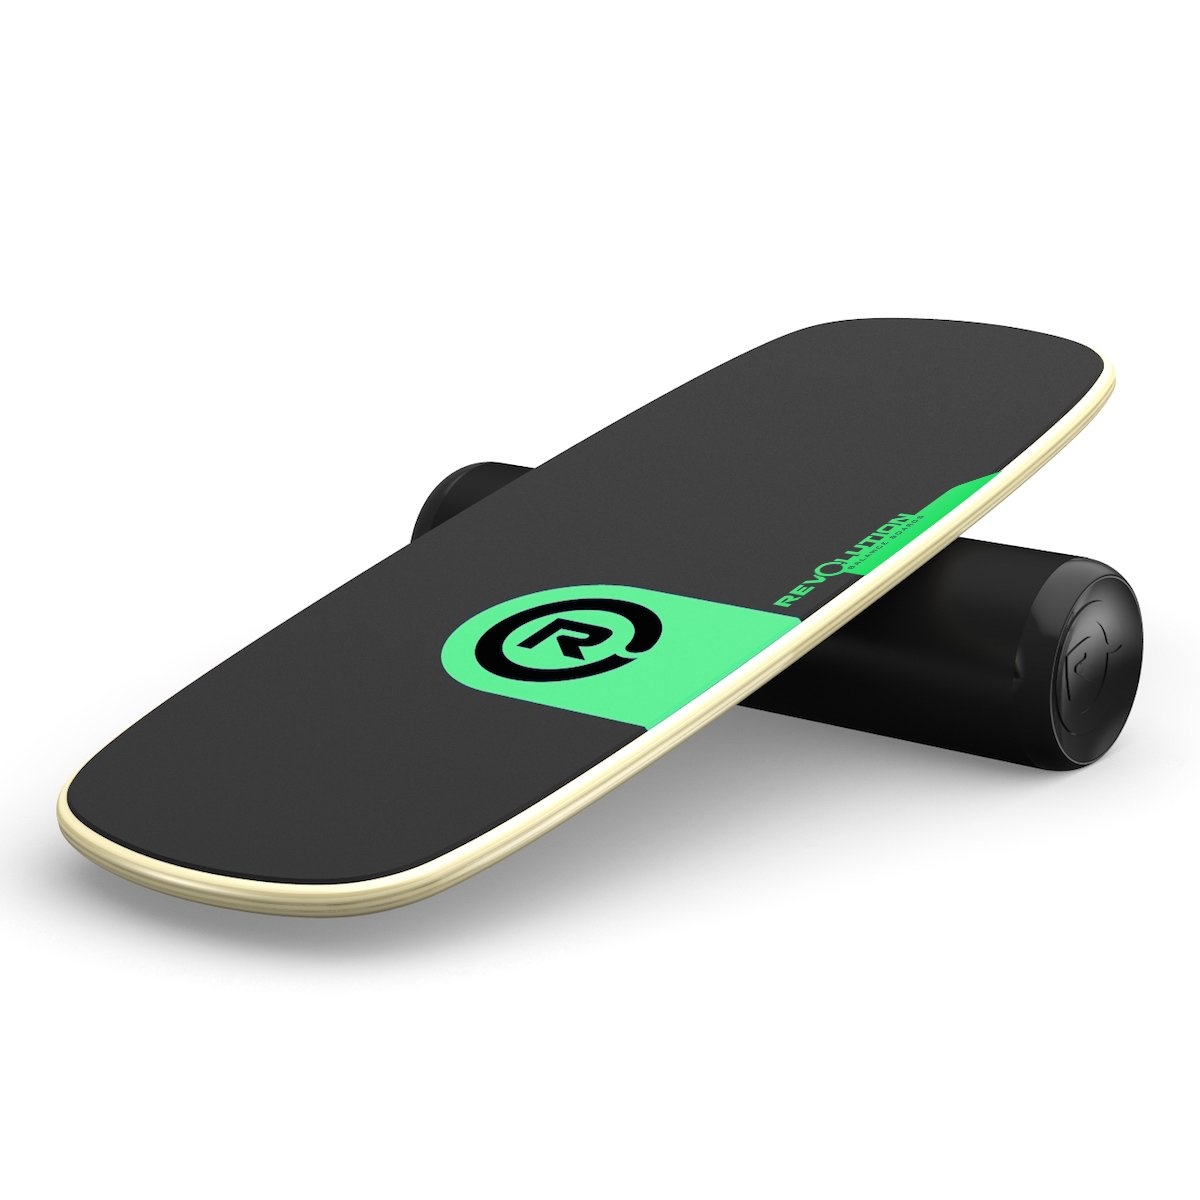 Revolution 101 Balance Board Trainer (Green)